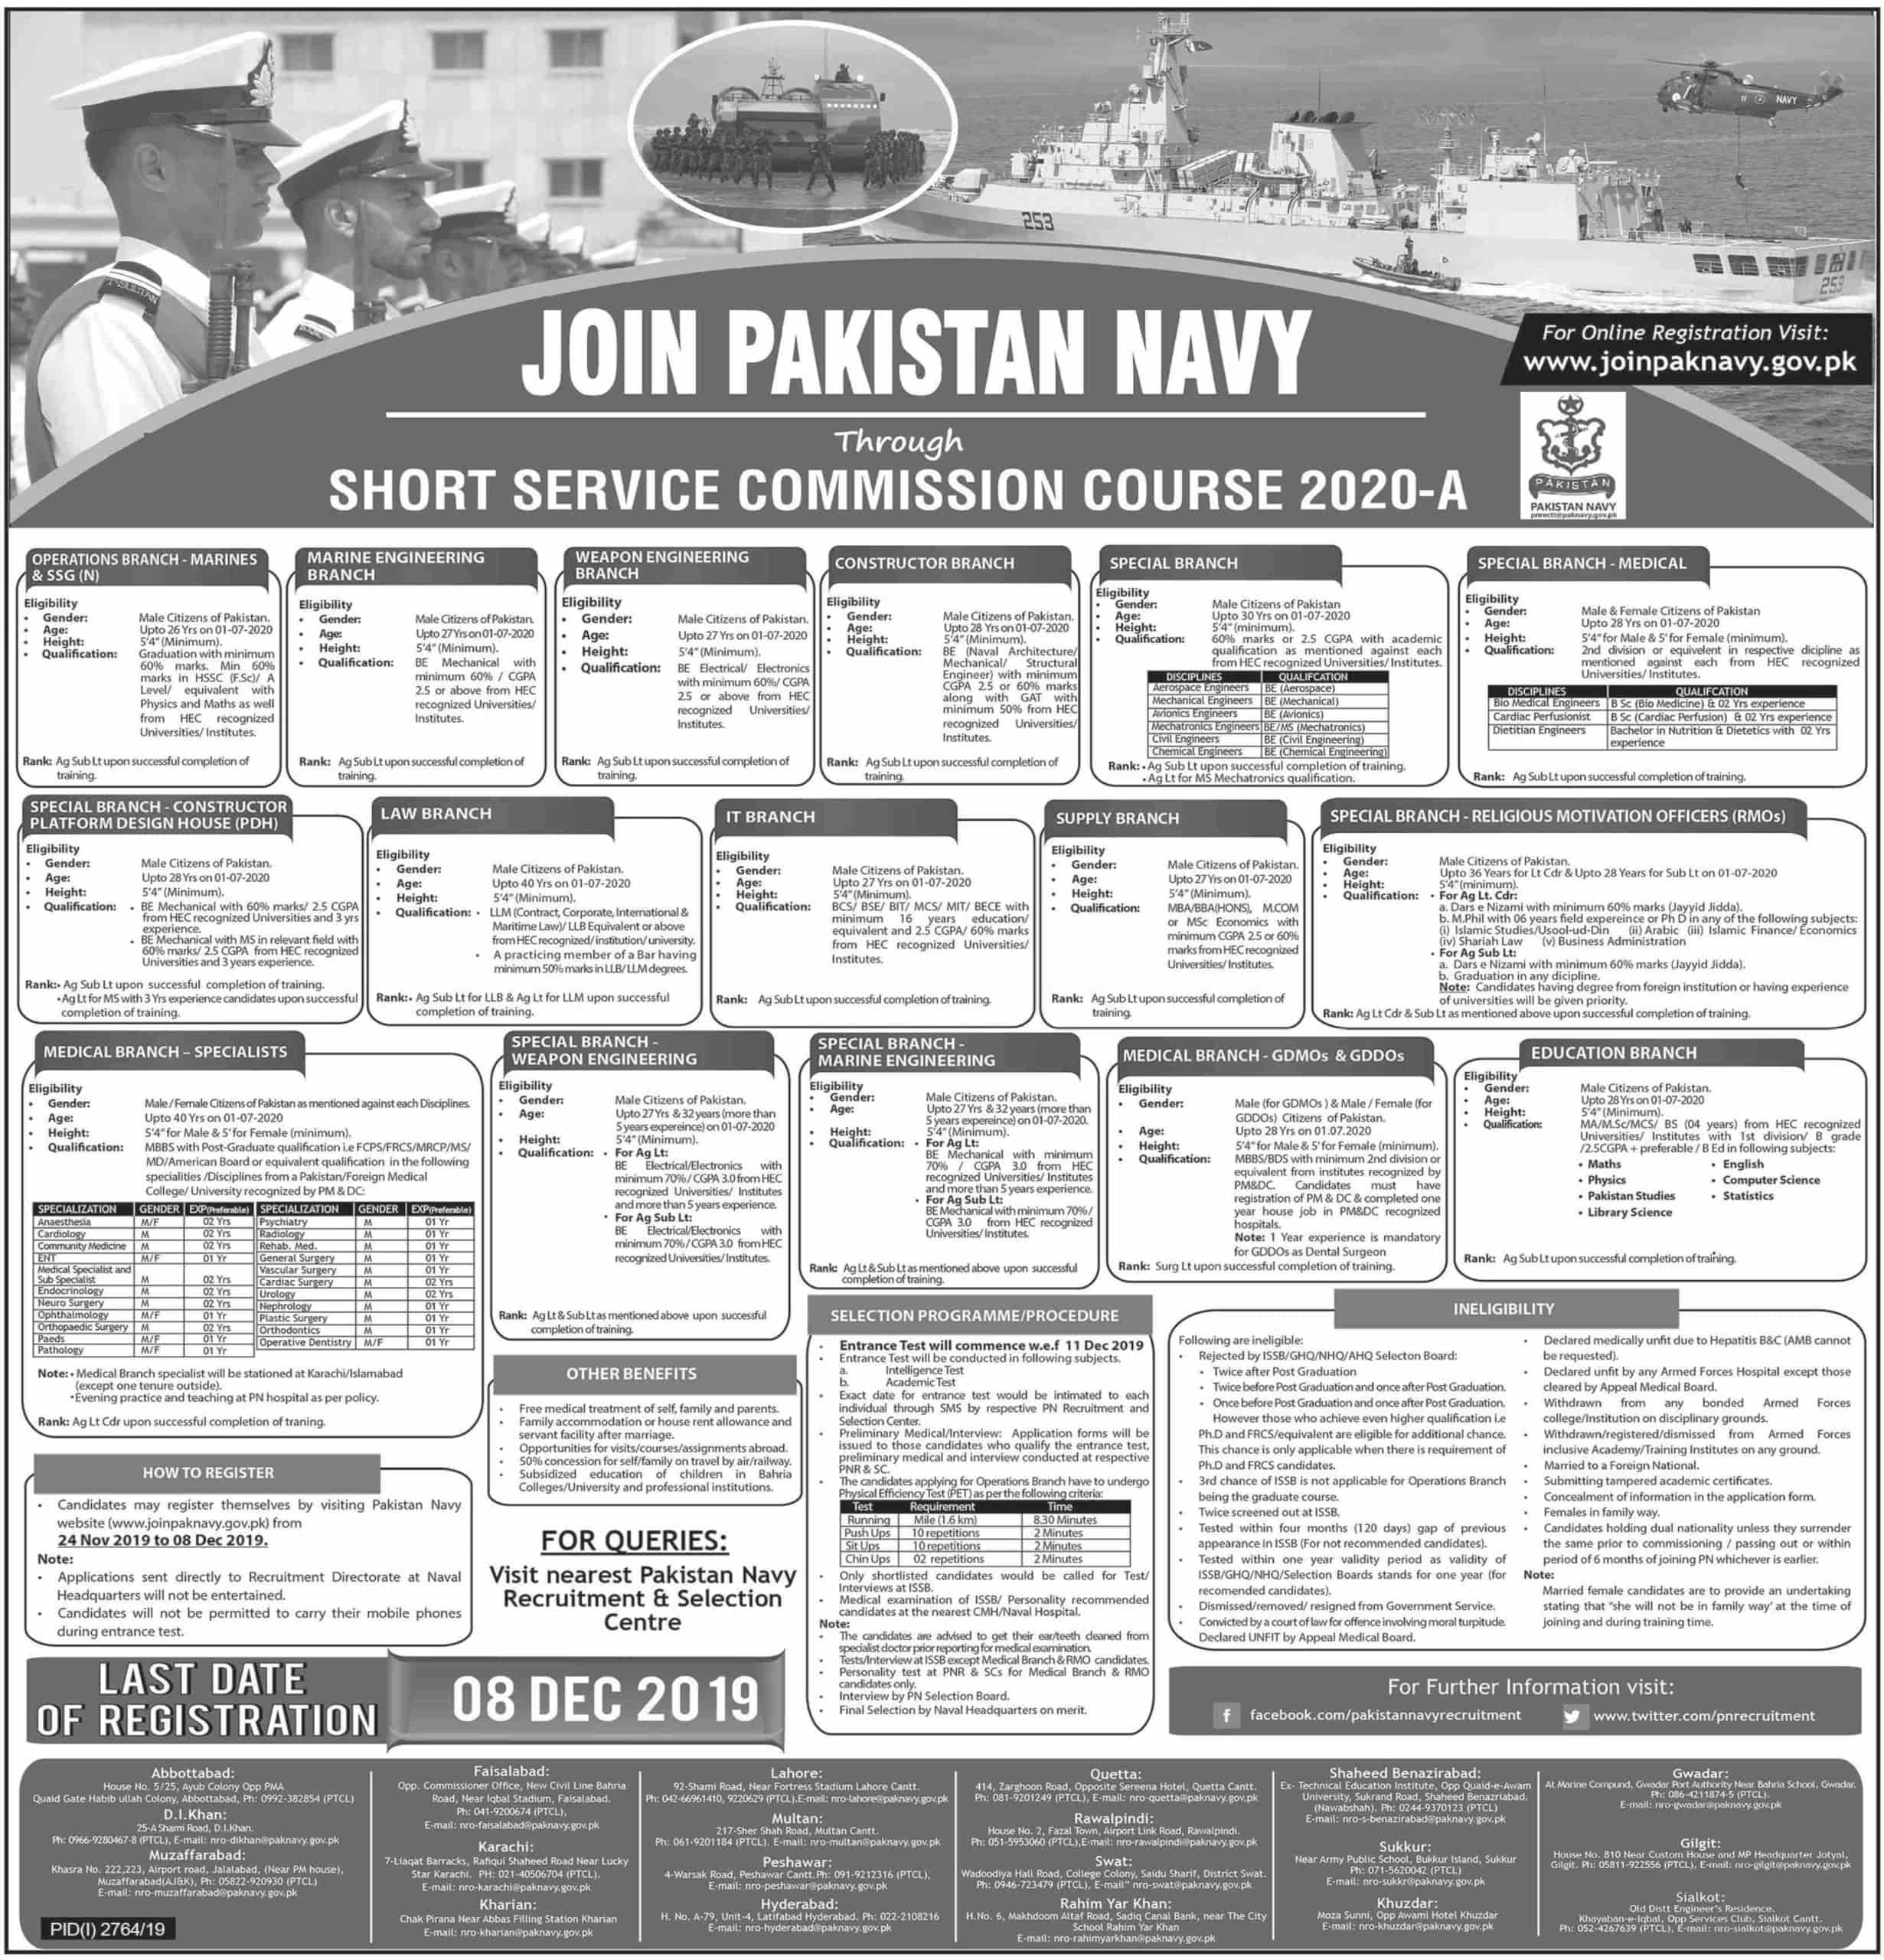 Join Pakistan Navy Jobs 2019 through Short Service Commission Course SSC 2020 A Latest Advertisement Online Registration